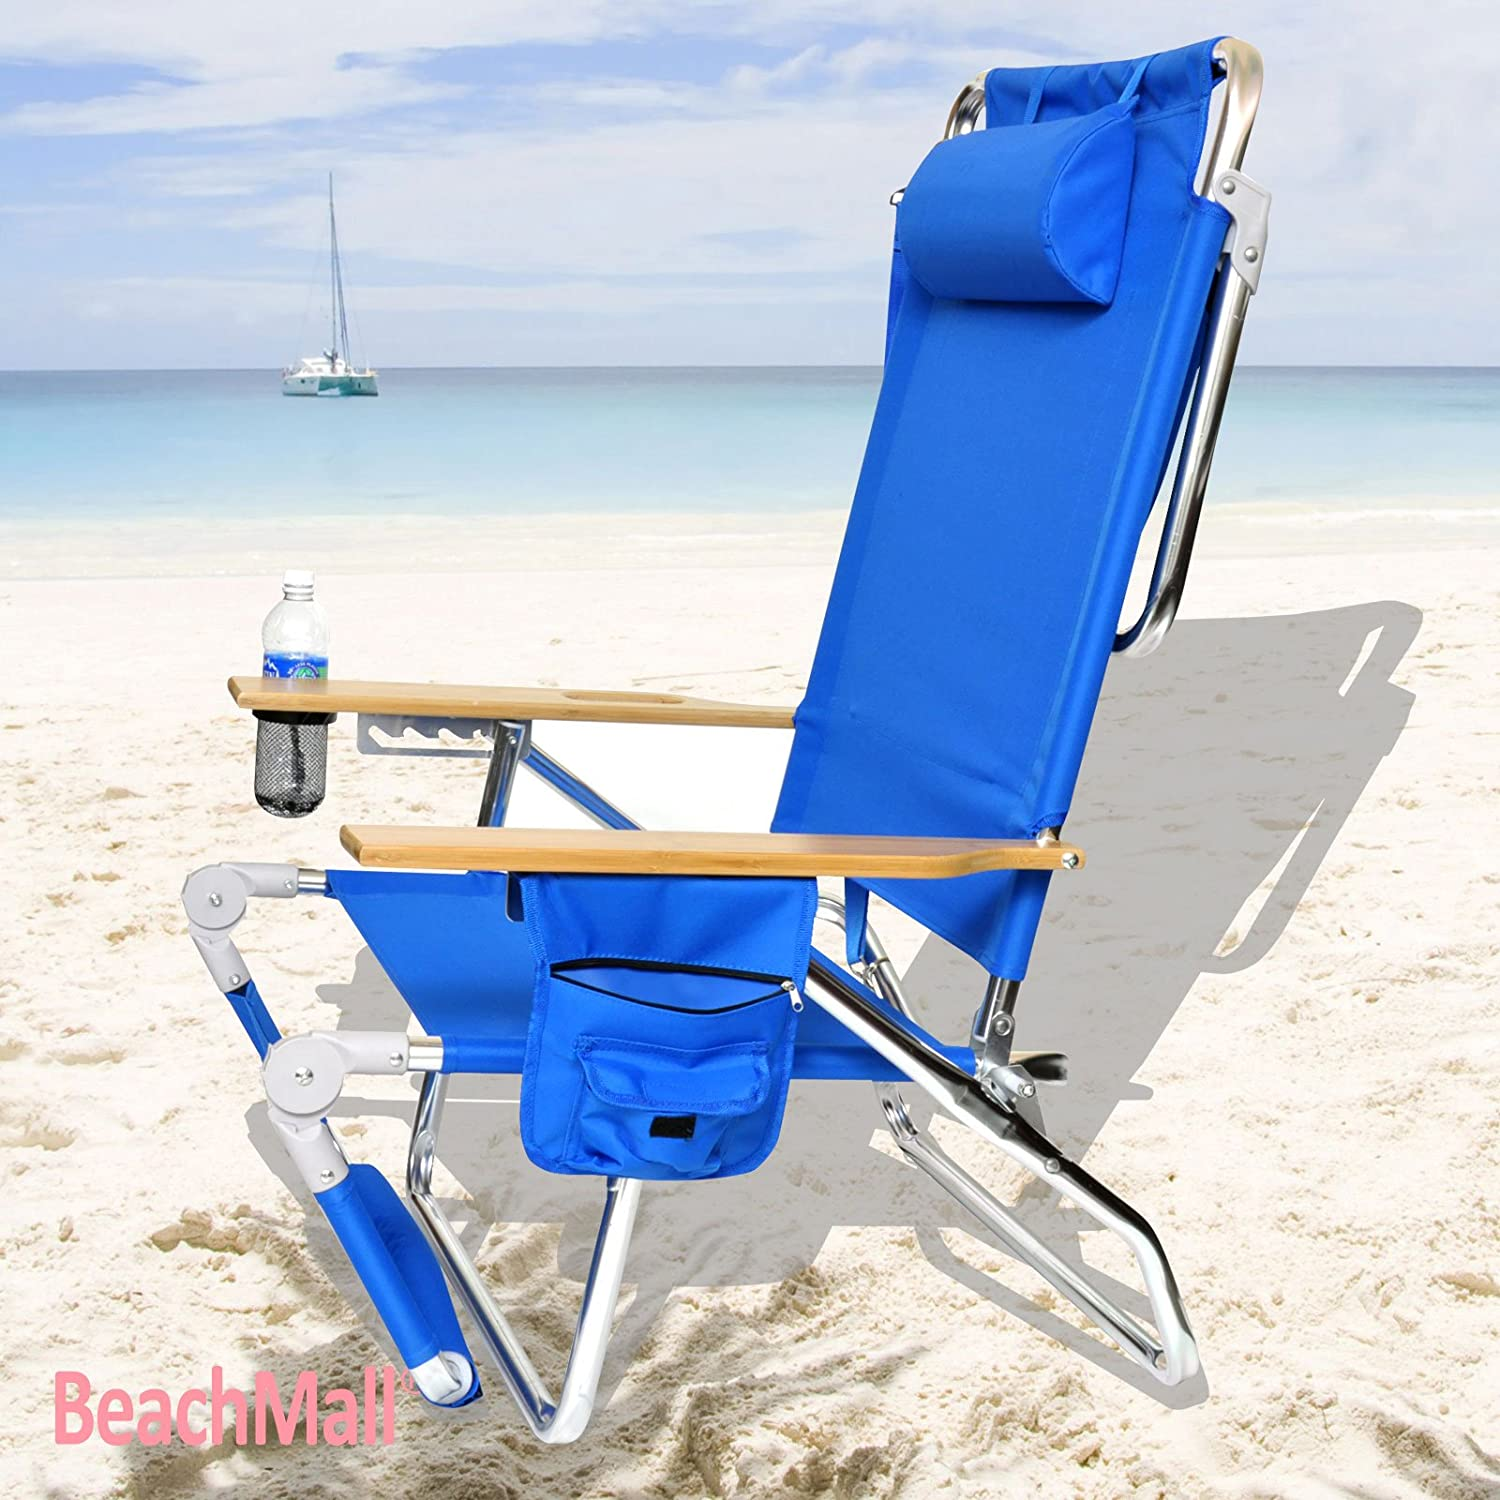 Amazon.com  BeachMall Beach Chair with Drink Holder and Storage Pouch  C&ing Chairs  Sports u0026 Outdoors  sc 1 st  Amazon.com & Amazon.com : BeachMall Beach Chair with Drink Holder and Storage ...